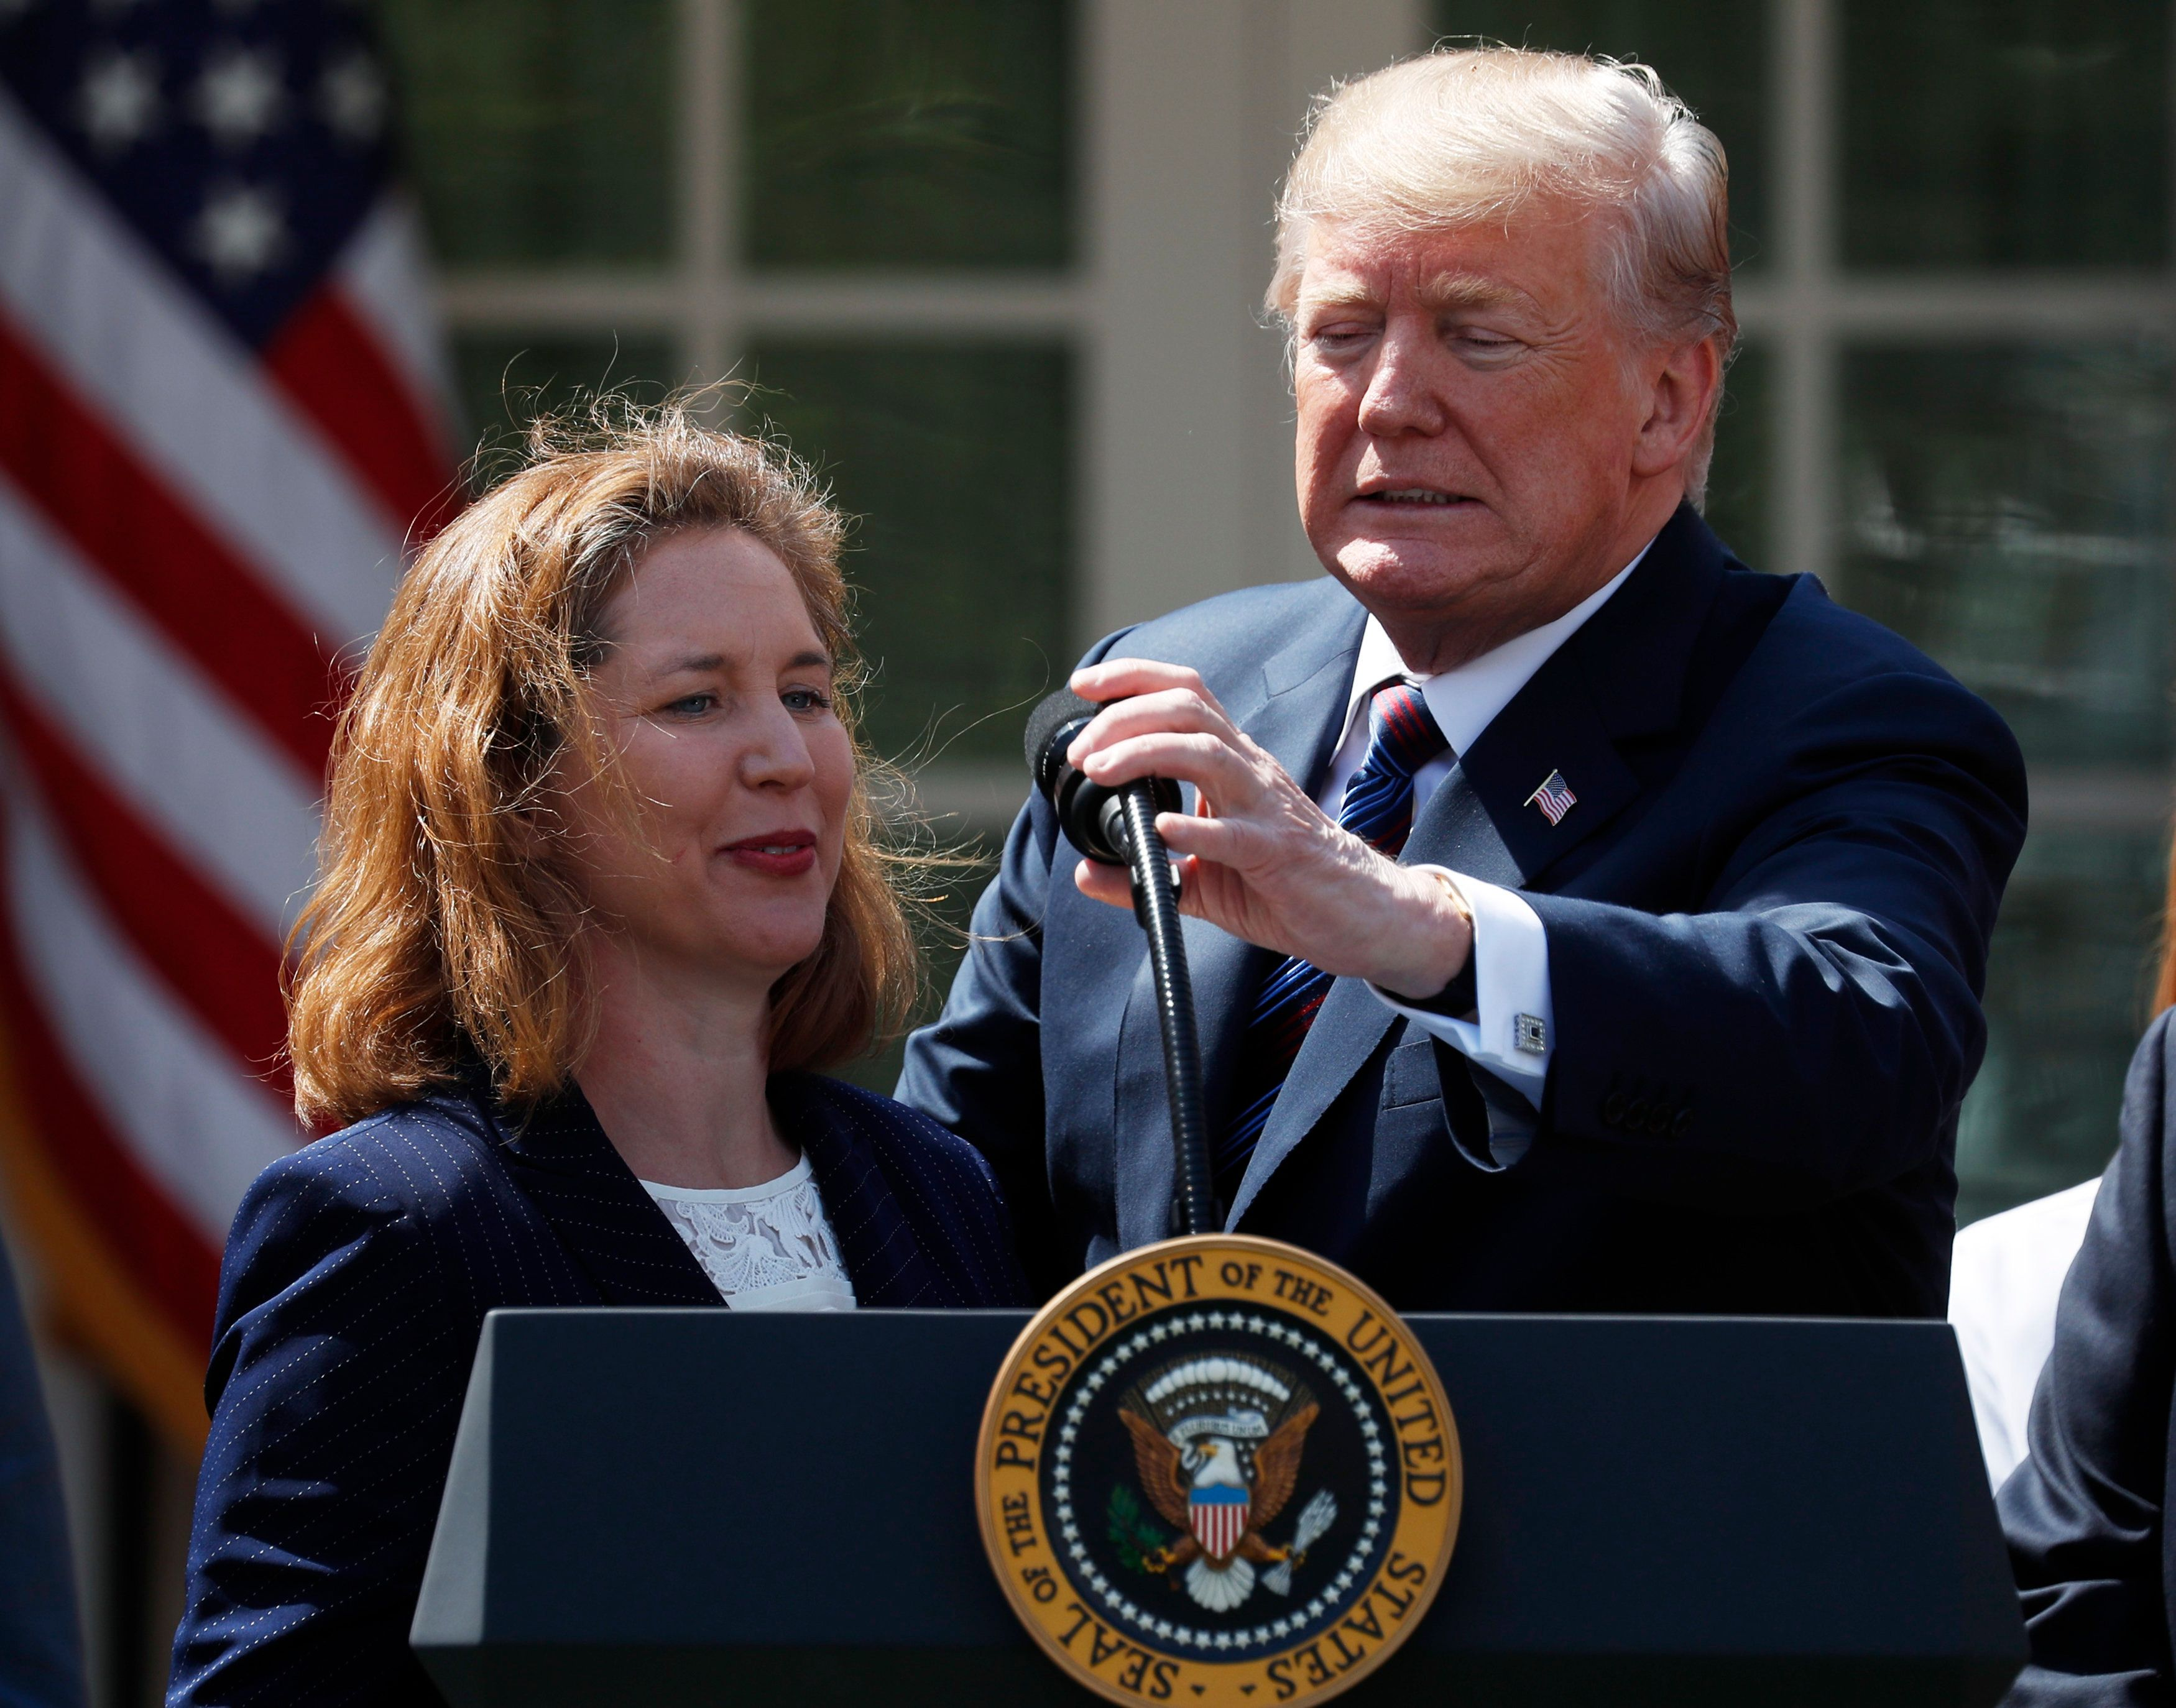 U.S. President Donald Trump adjusts the mic for Nicole Bergstrom of Smithcraft Signs of Avondale, Arizona while delivering remarks on tax cuts for American workers during an event in the White House Rose Garden in Washington, U.S., April 12, 2018. REUTERS/Kevin Lamarque